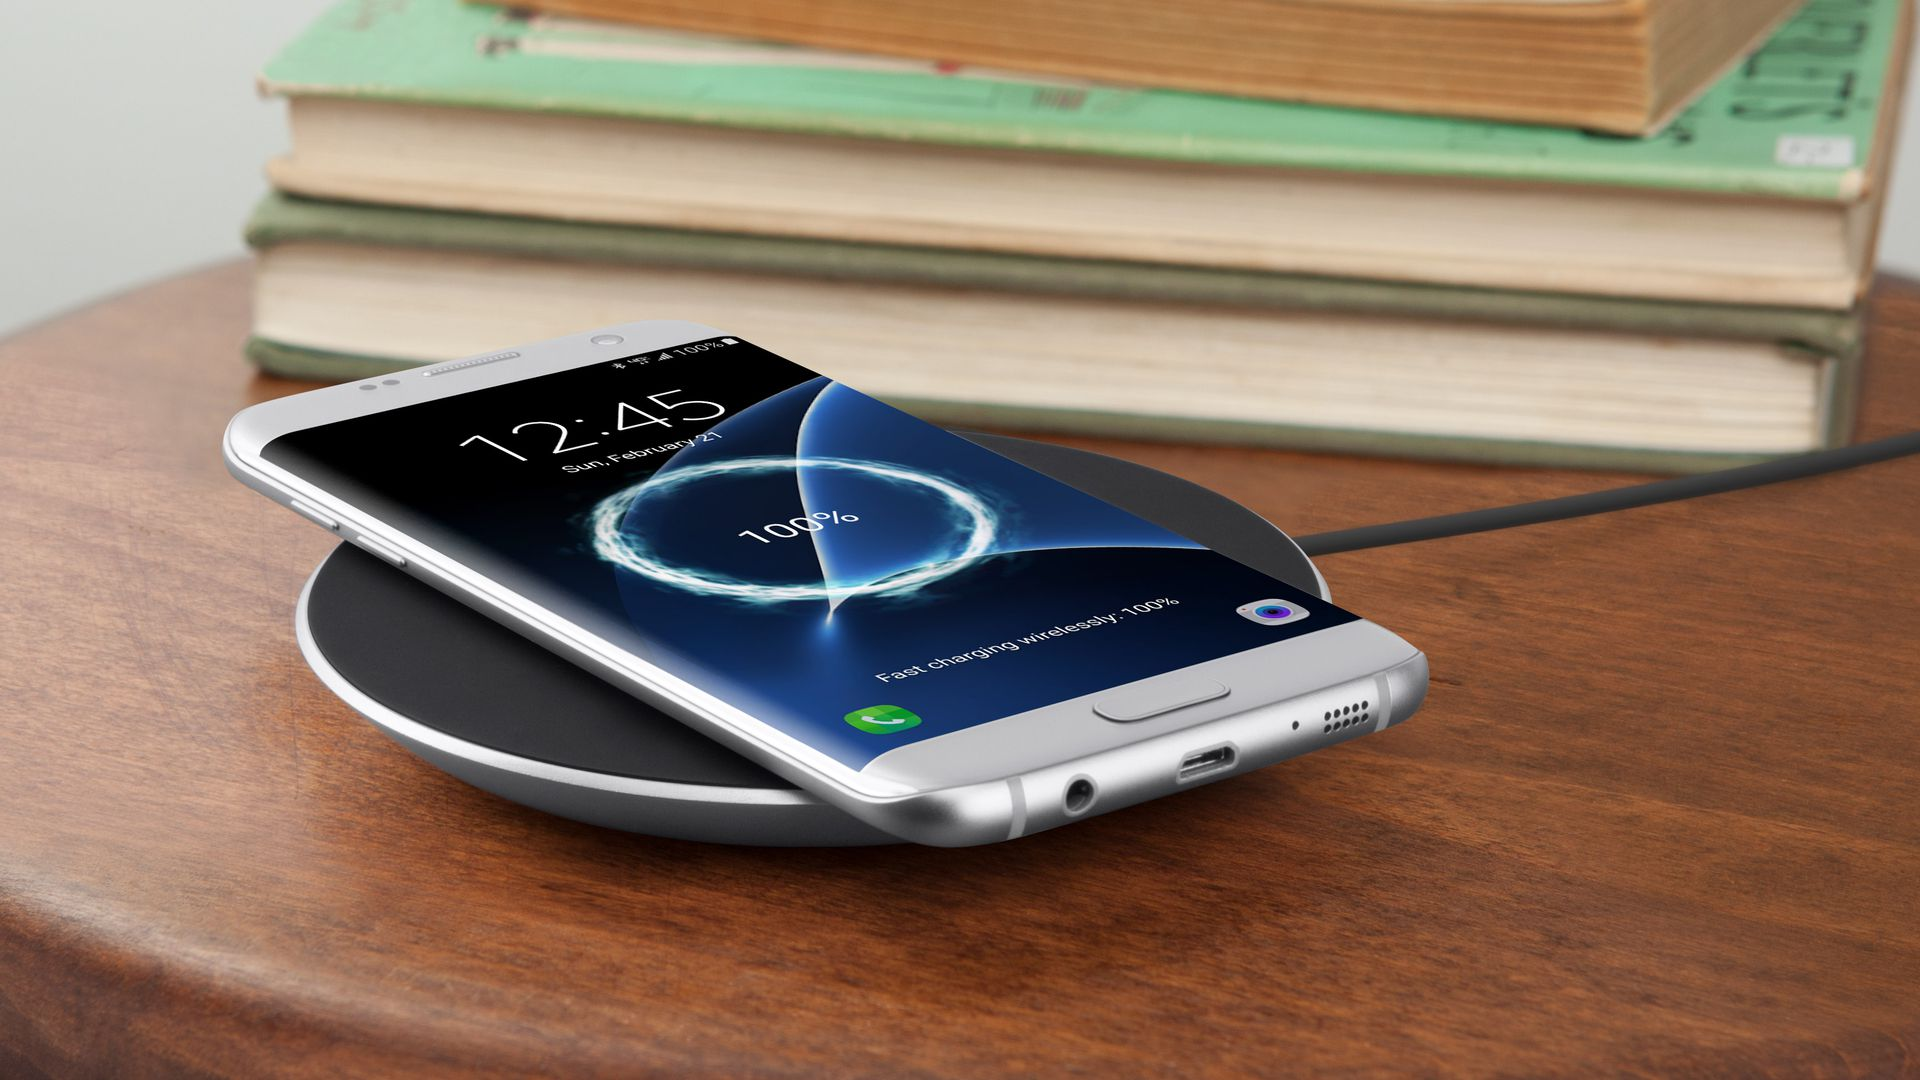 A Belkin wireless charger